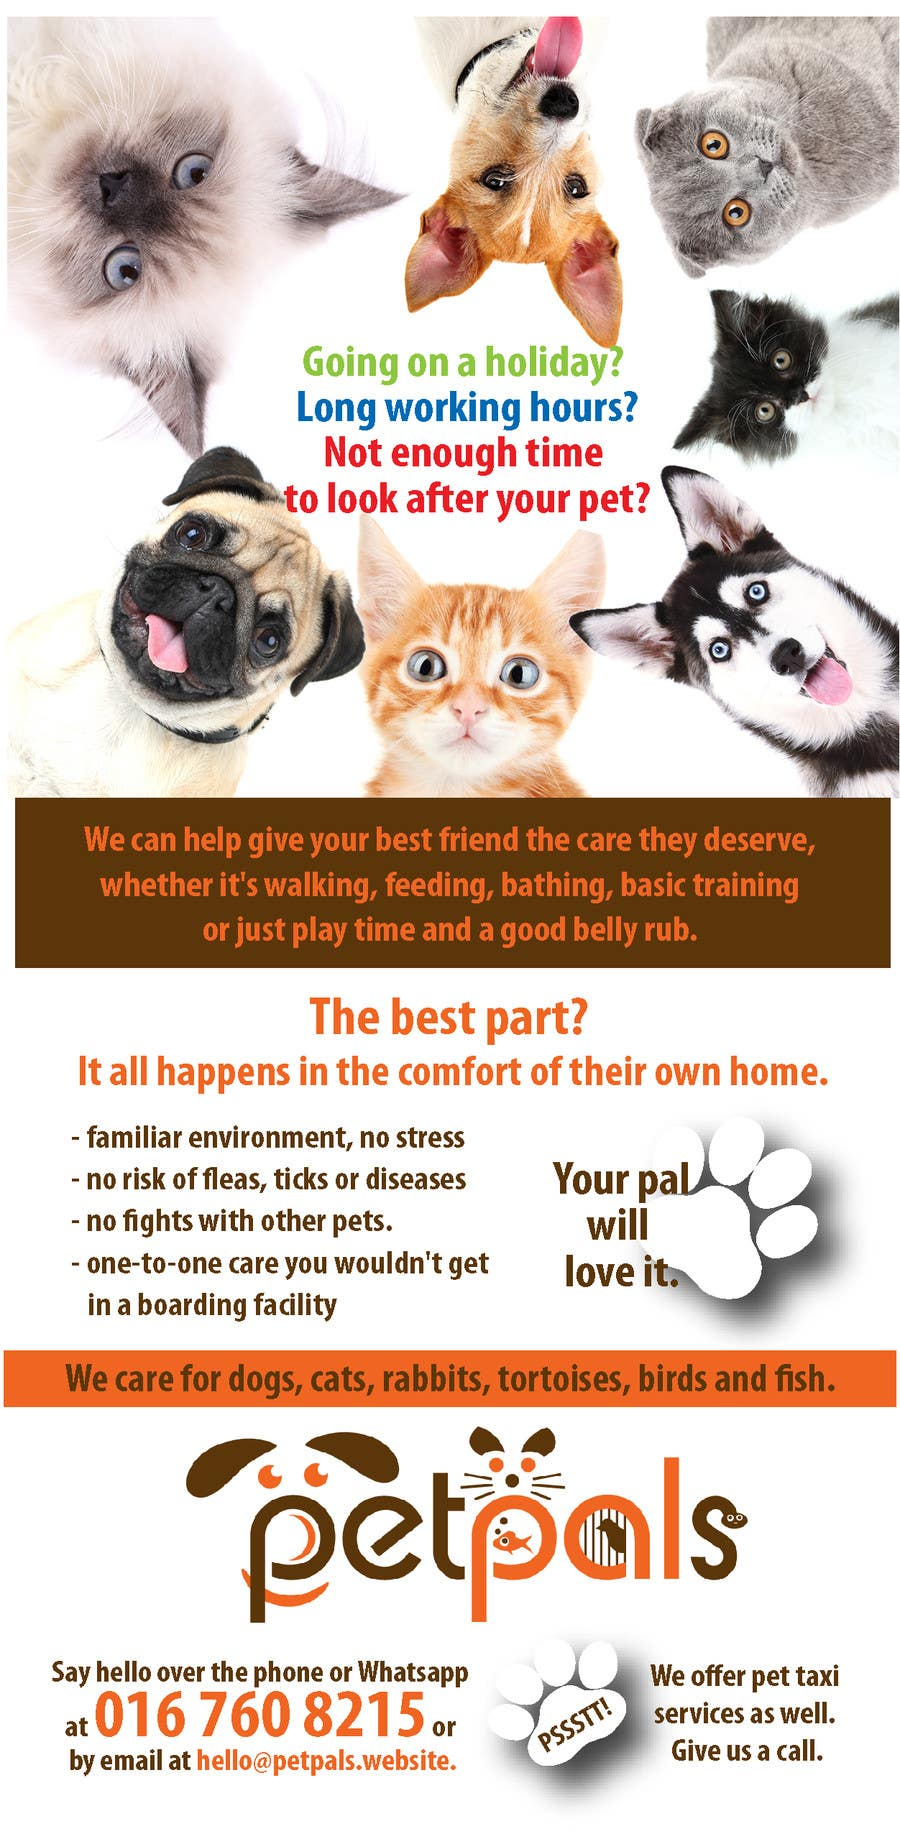 design a flyer for a pet sitting business lancer 31 for design a flyer for a pet sitting business by rcoco